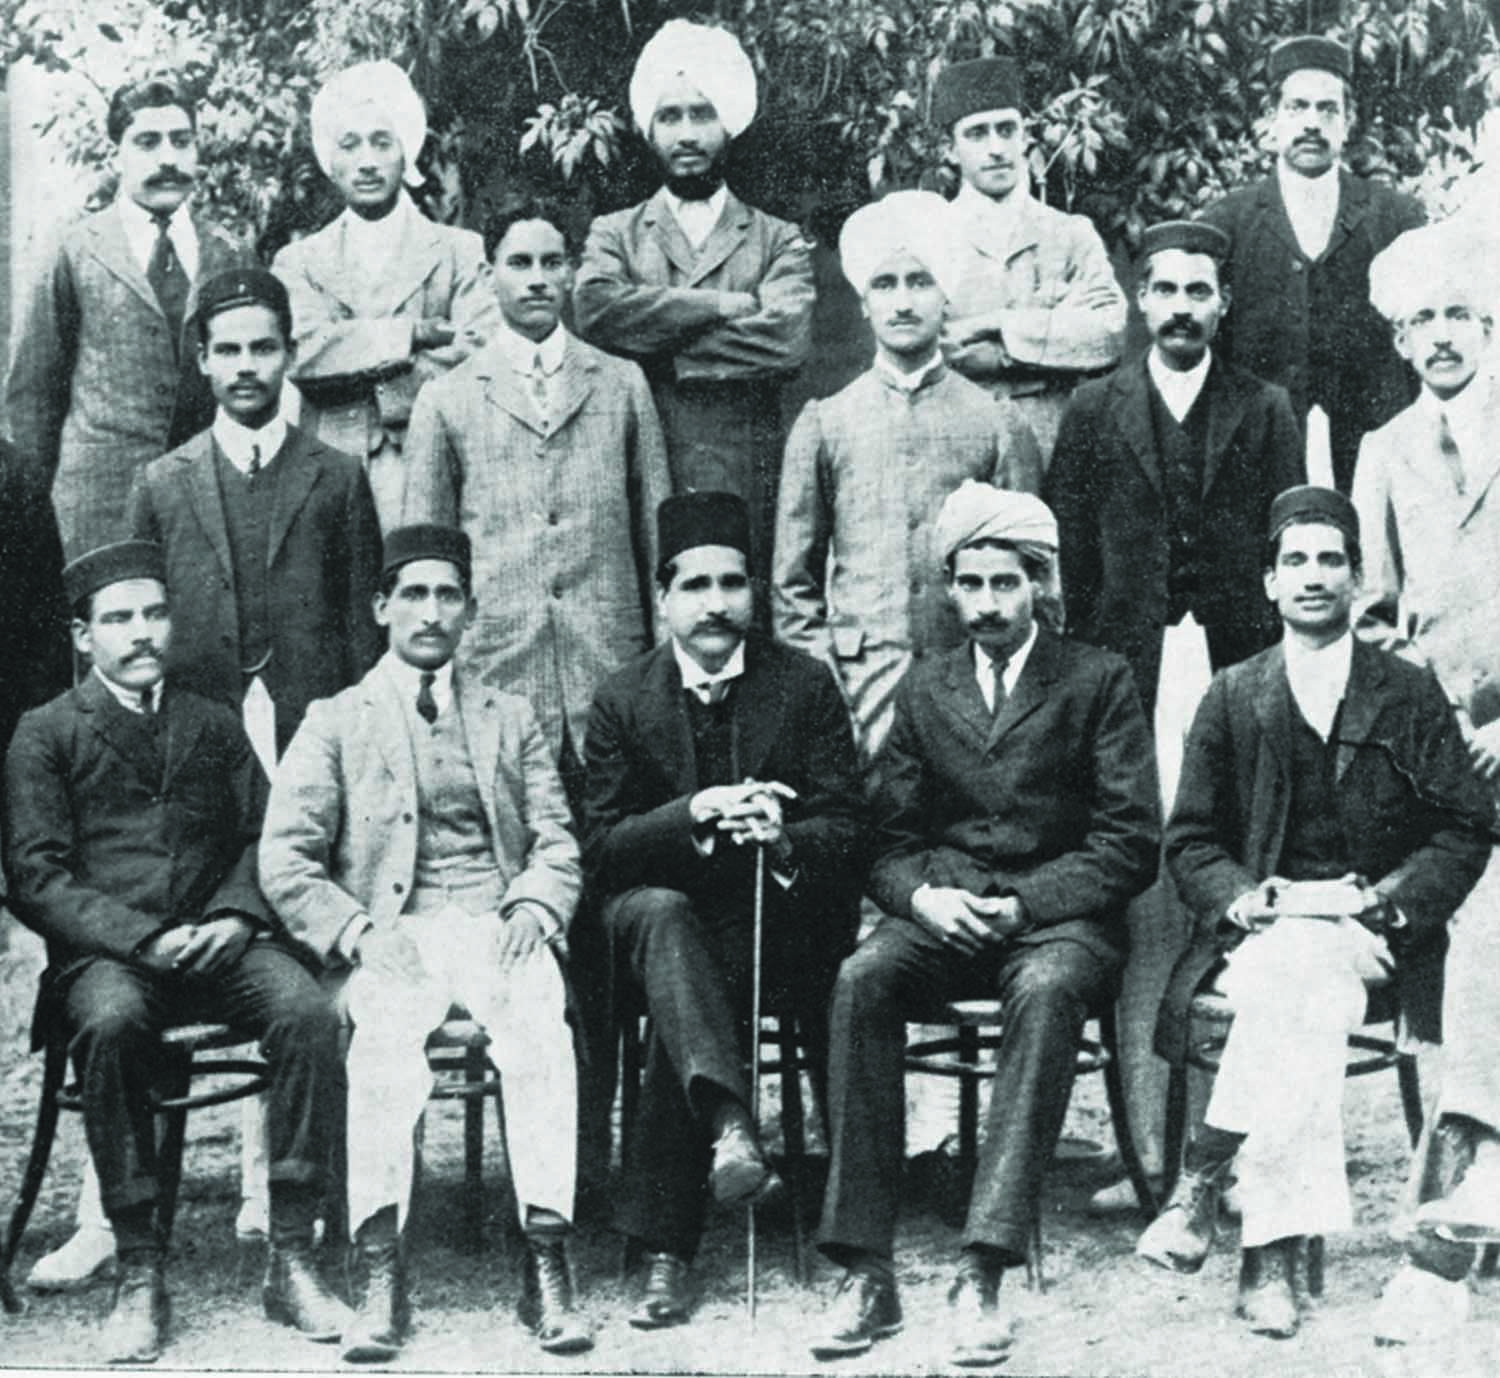 Allama Iqbal (front row; centre) with students at Government College, Lahore, where he served as a faculty member in the Philosophy Department. Photo: Iqbal Academy.